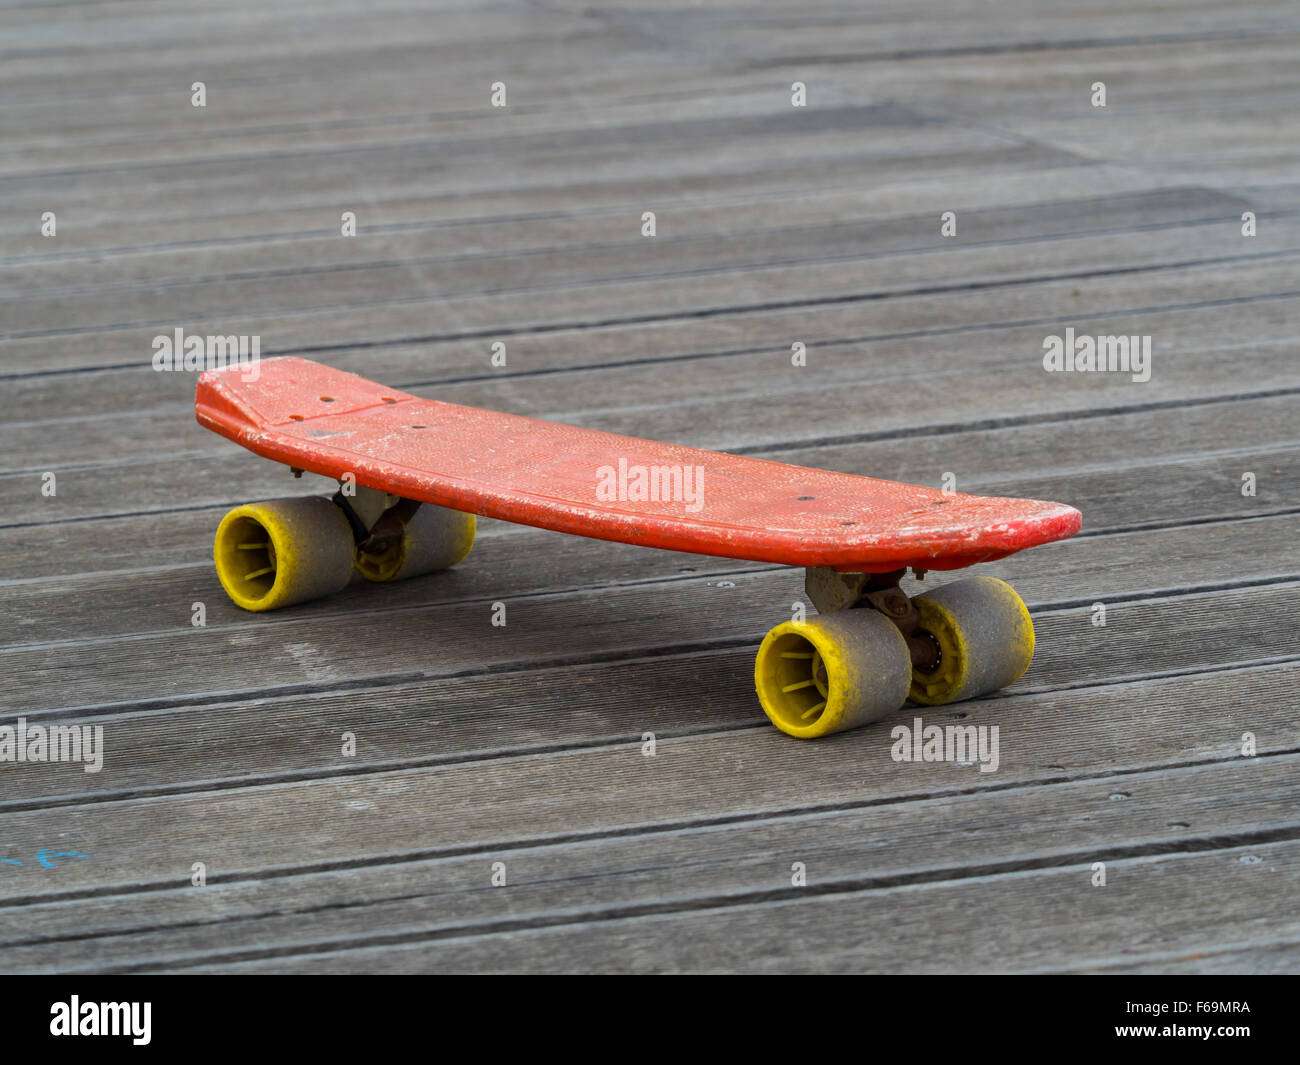 old skate board made of red and yellow plastic on wooden surface - Stock Image